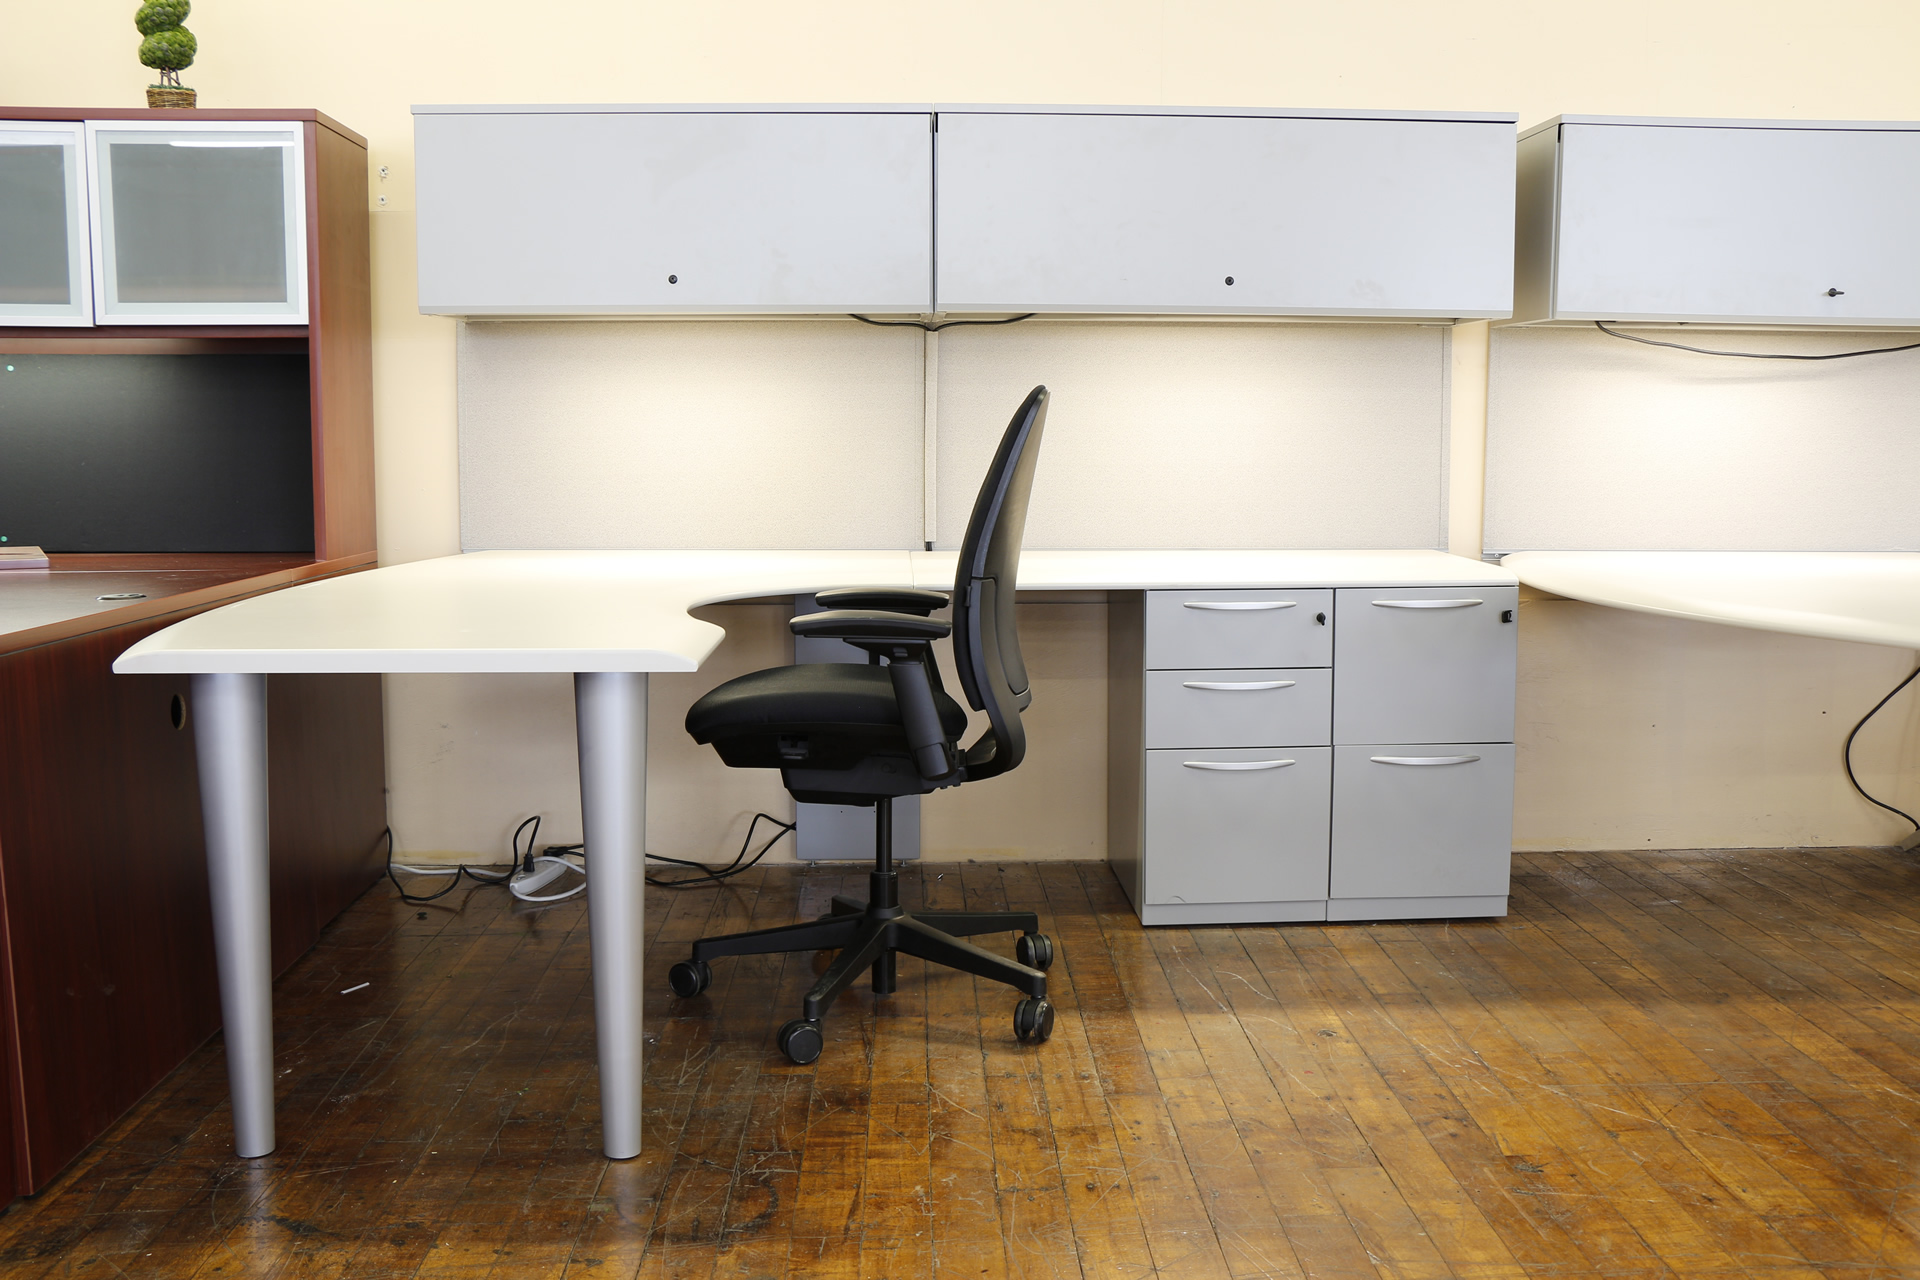 peartreeofficefurniture_peartreeofficefurniture_mg_4402.jpg